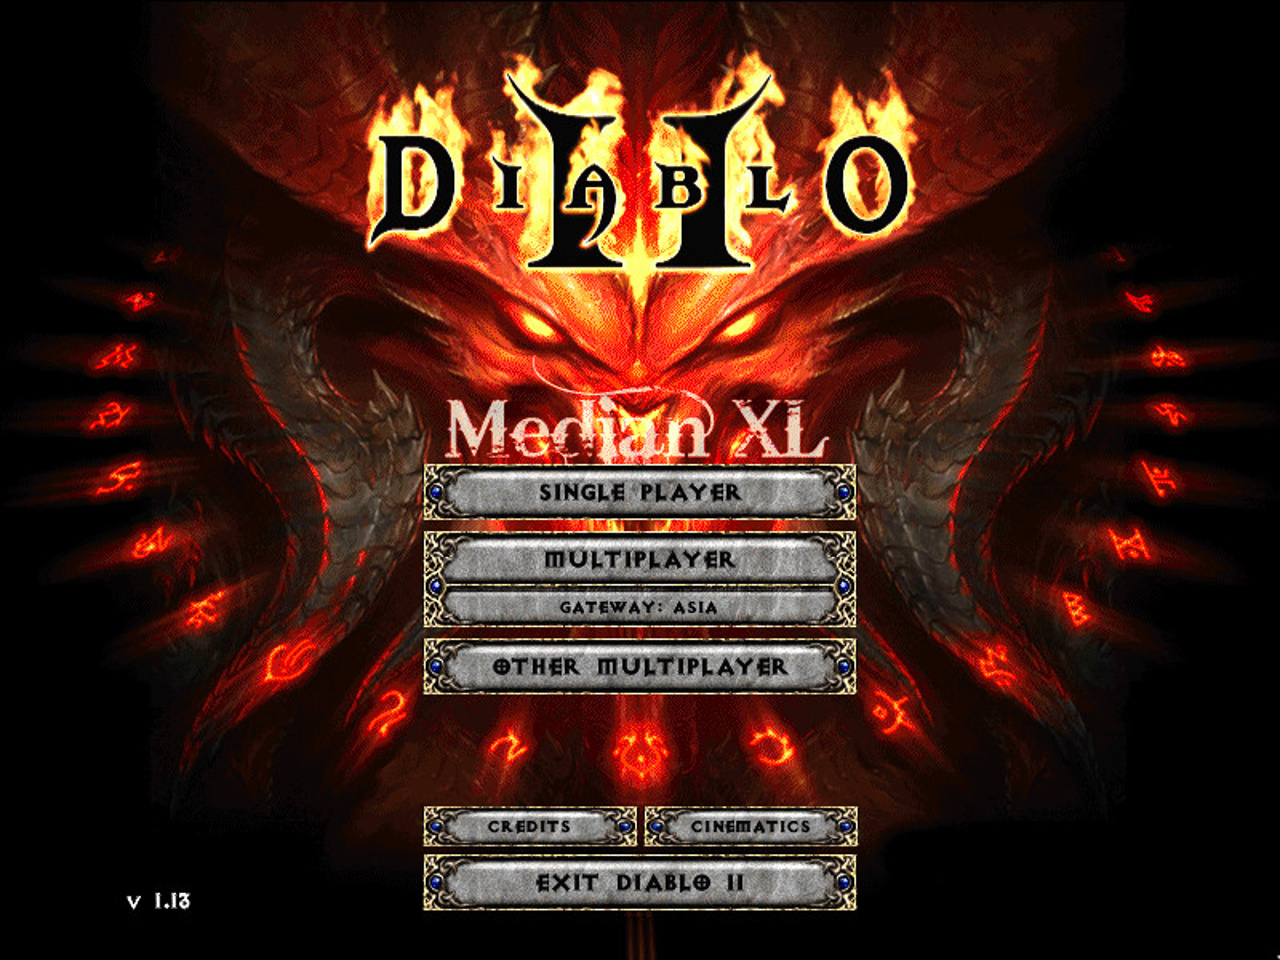 Diablo 2: Median XL - Ultimative Review | Lilura1